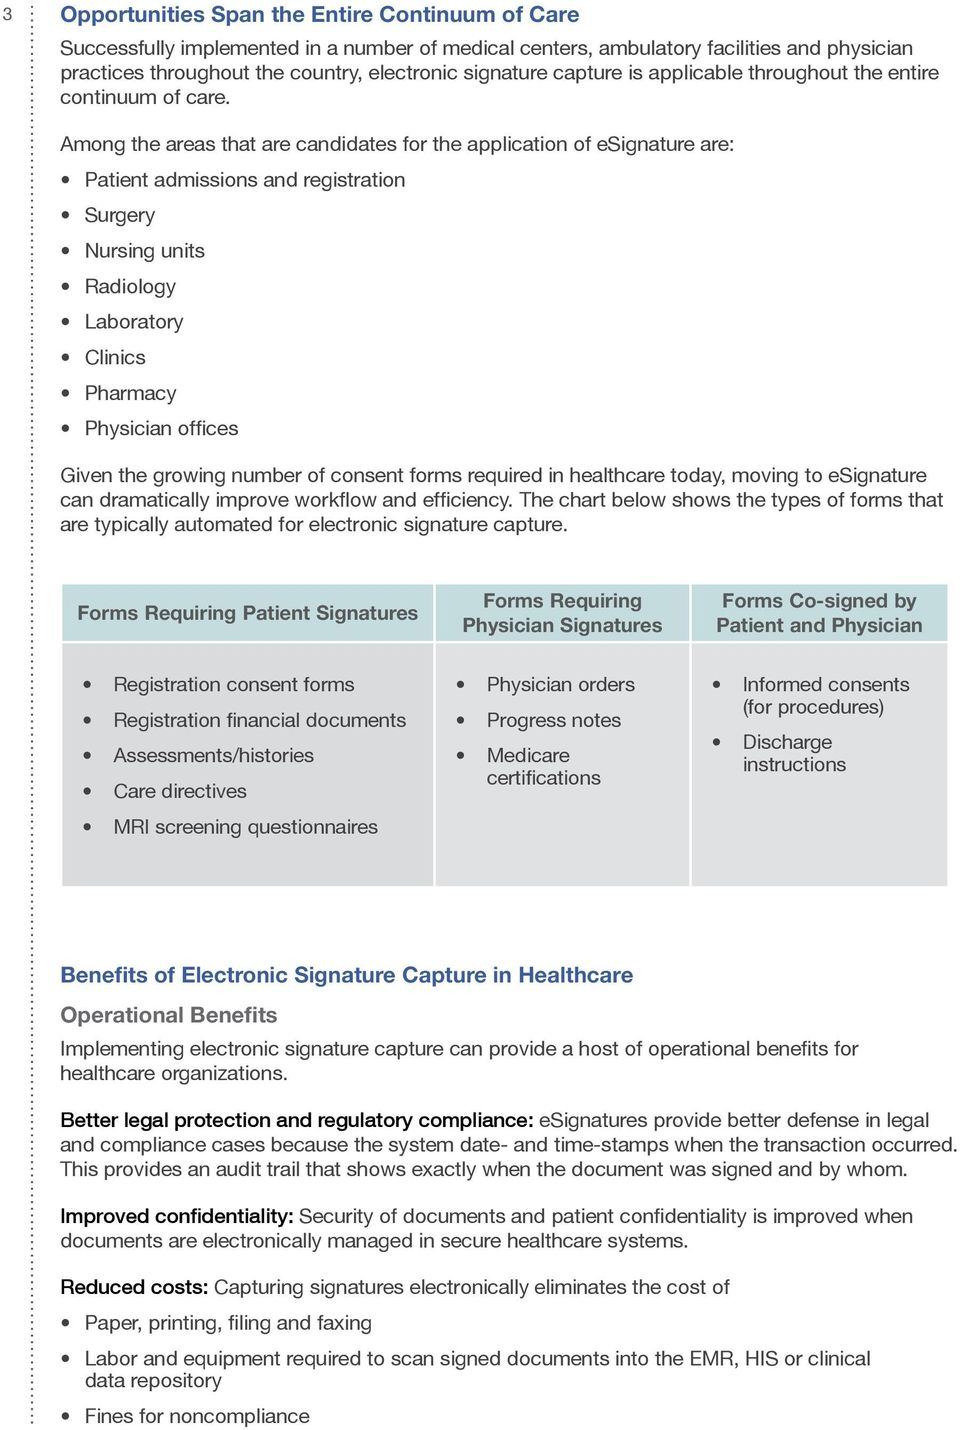 Among the areas that are candidates for the application of esignature are: Patient admissions and registration Surgery Nursing units Radiology Laboratory Clinics Pharmacy Physician offices Given the